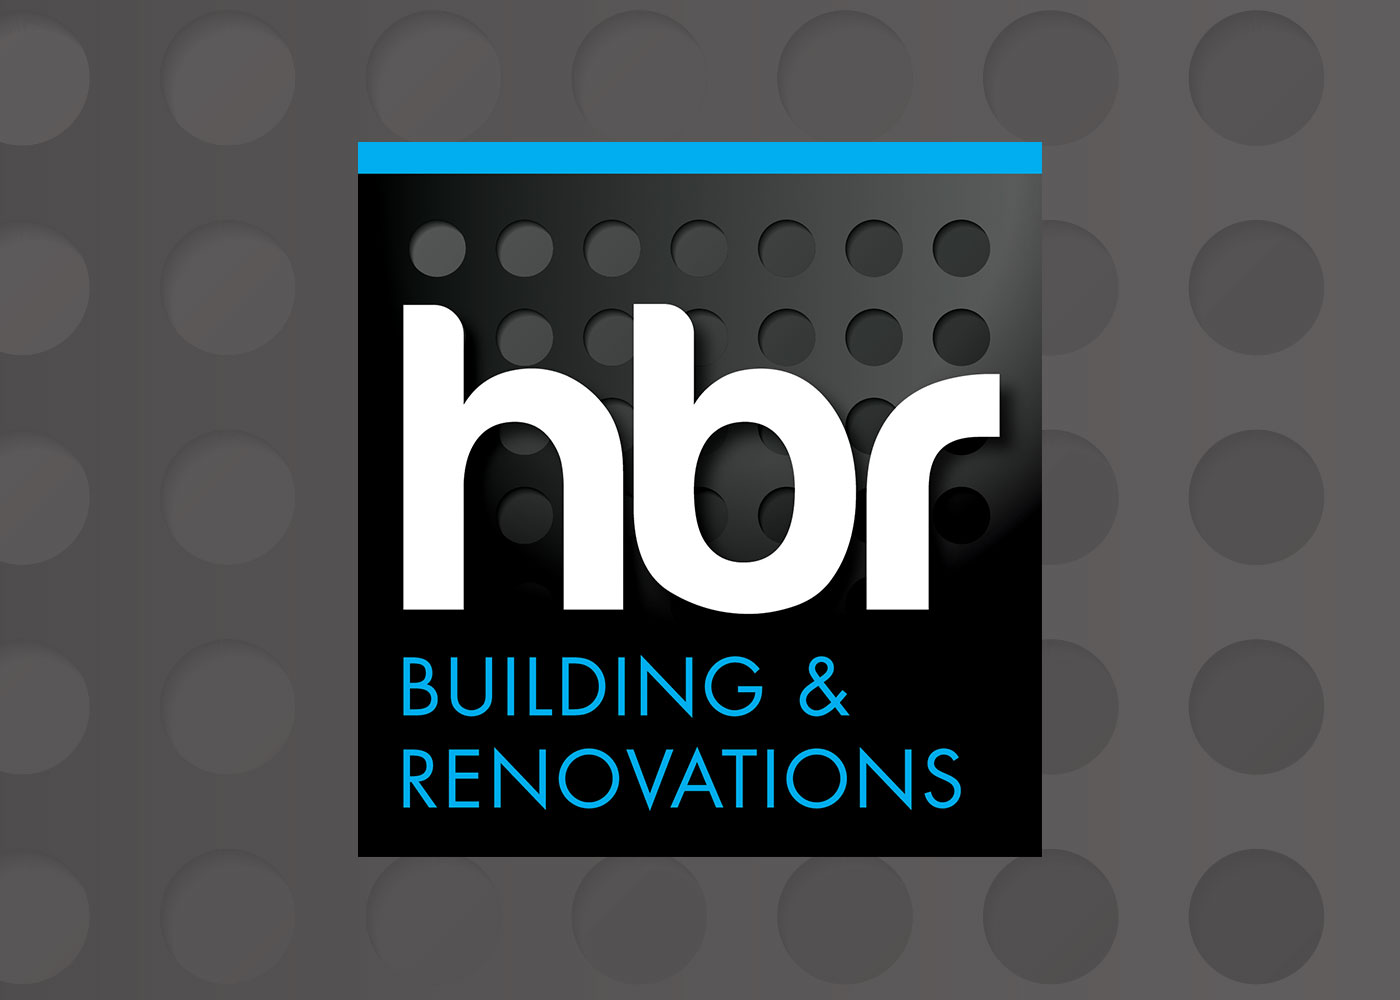 Hbr Building And Renovations Hbr Group